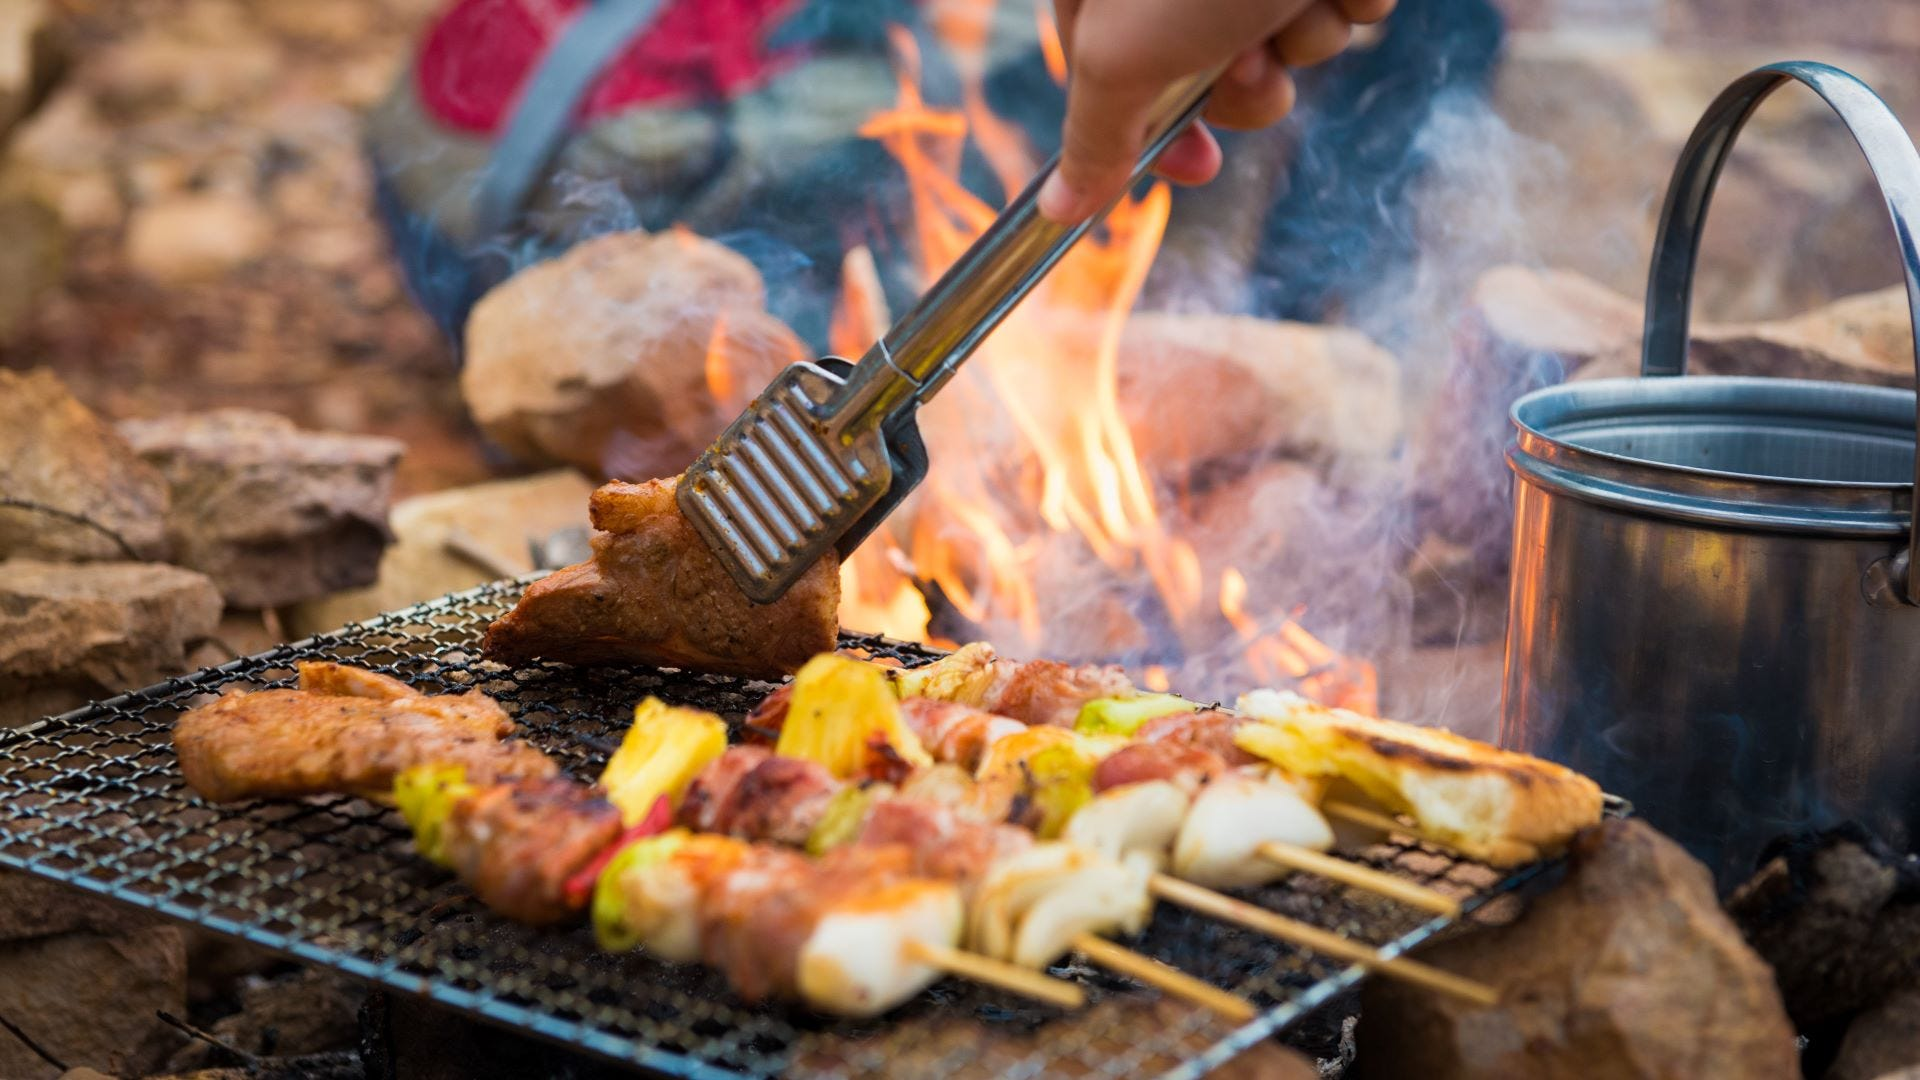 Someone using tongs to flip meat over on a campfire grill loaded with food.